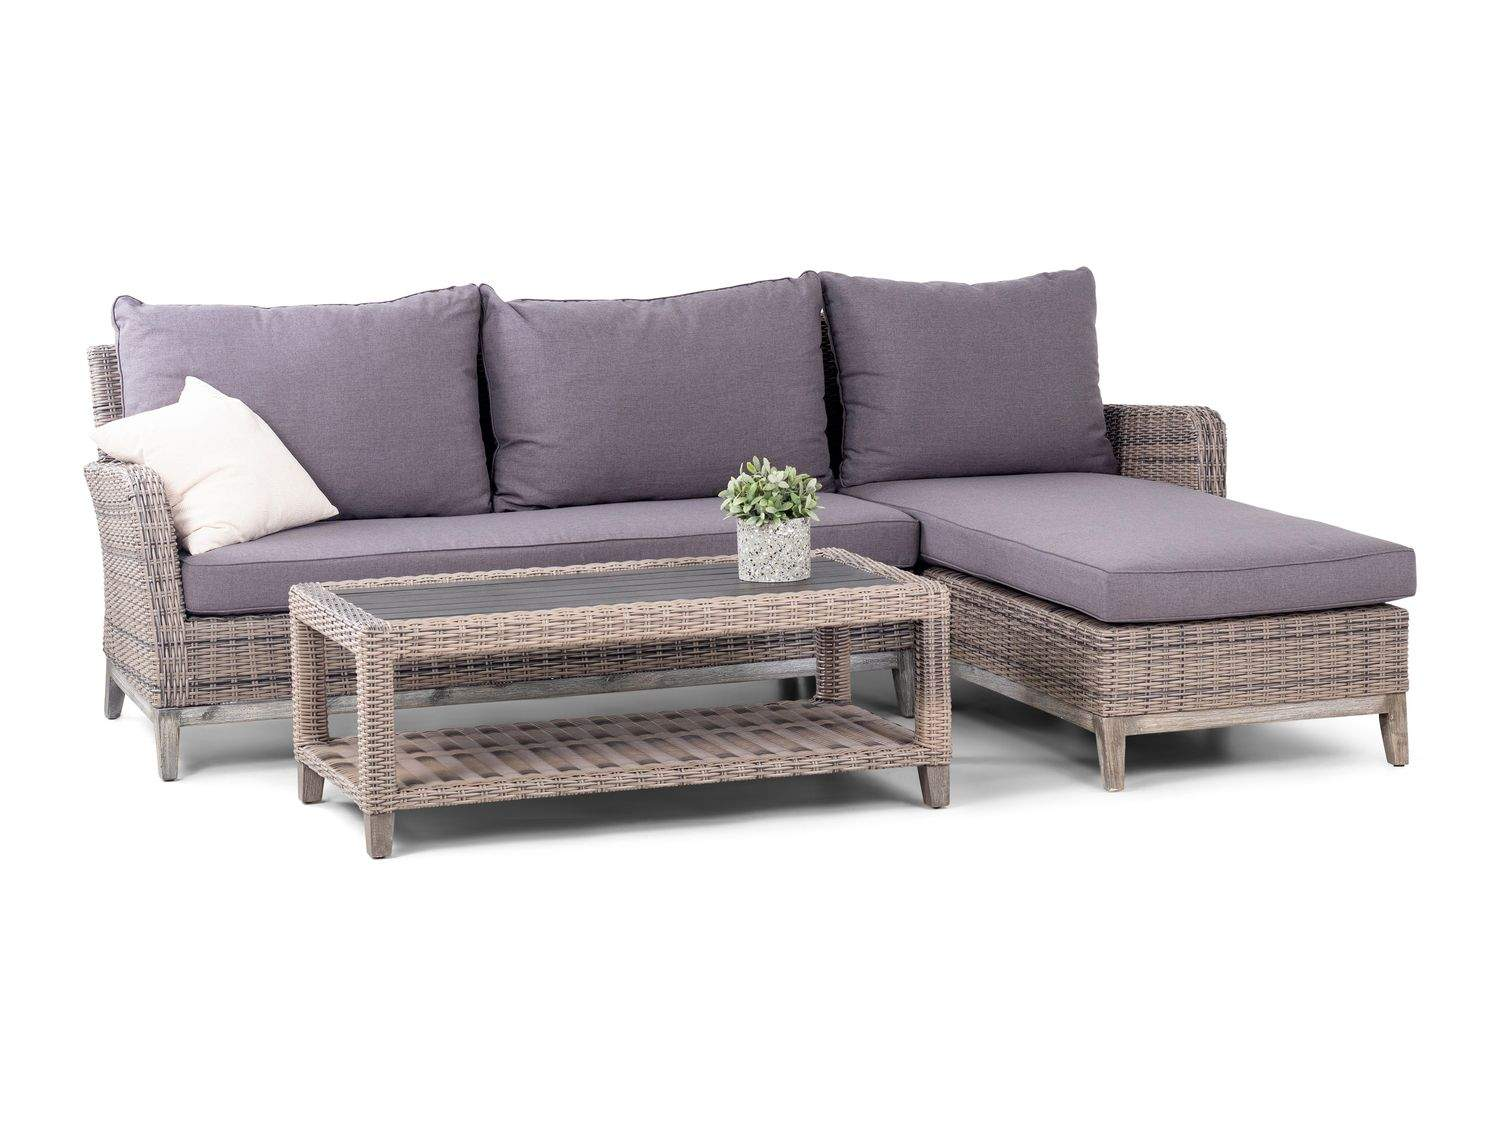 Garten Lounge Set Luxus Homexperts Lounge Set Anita